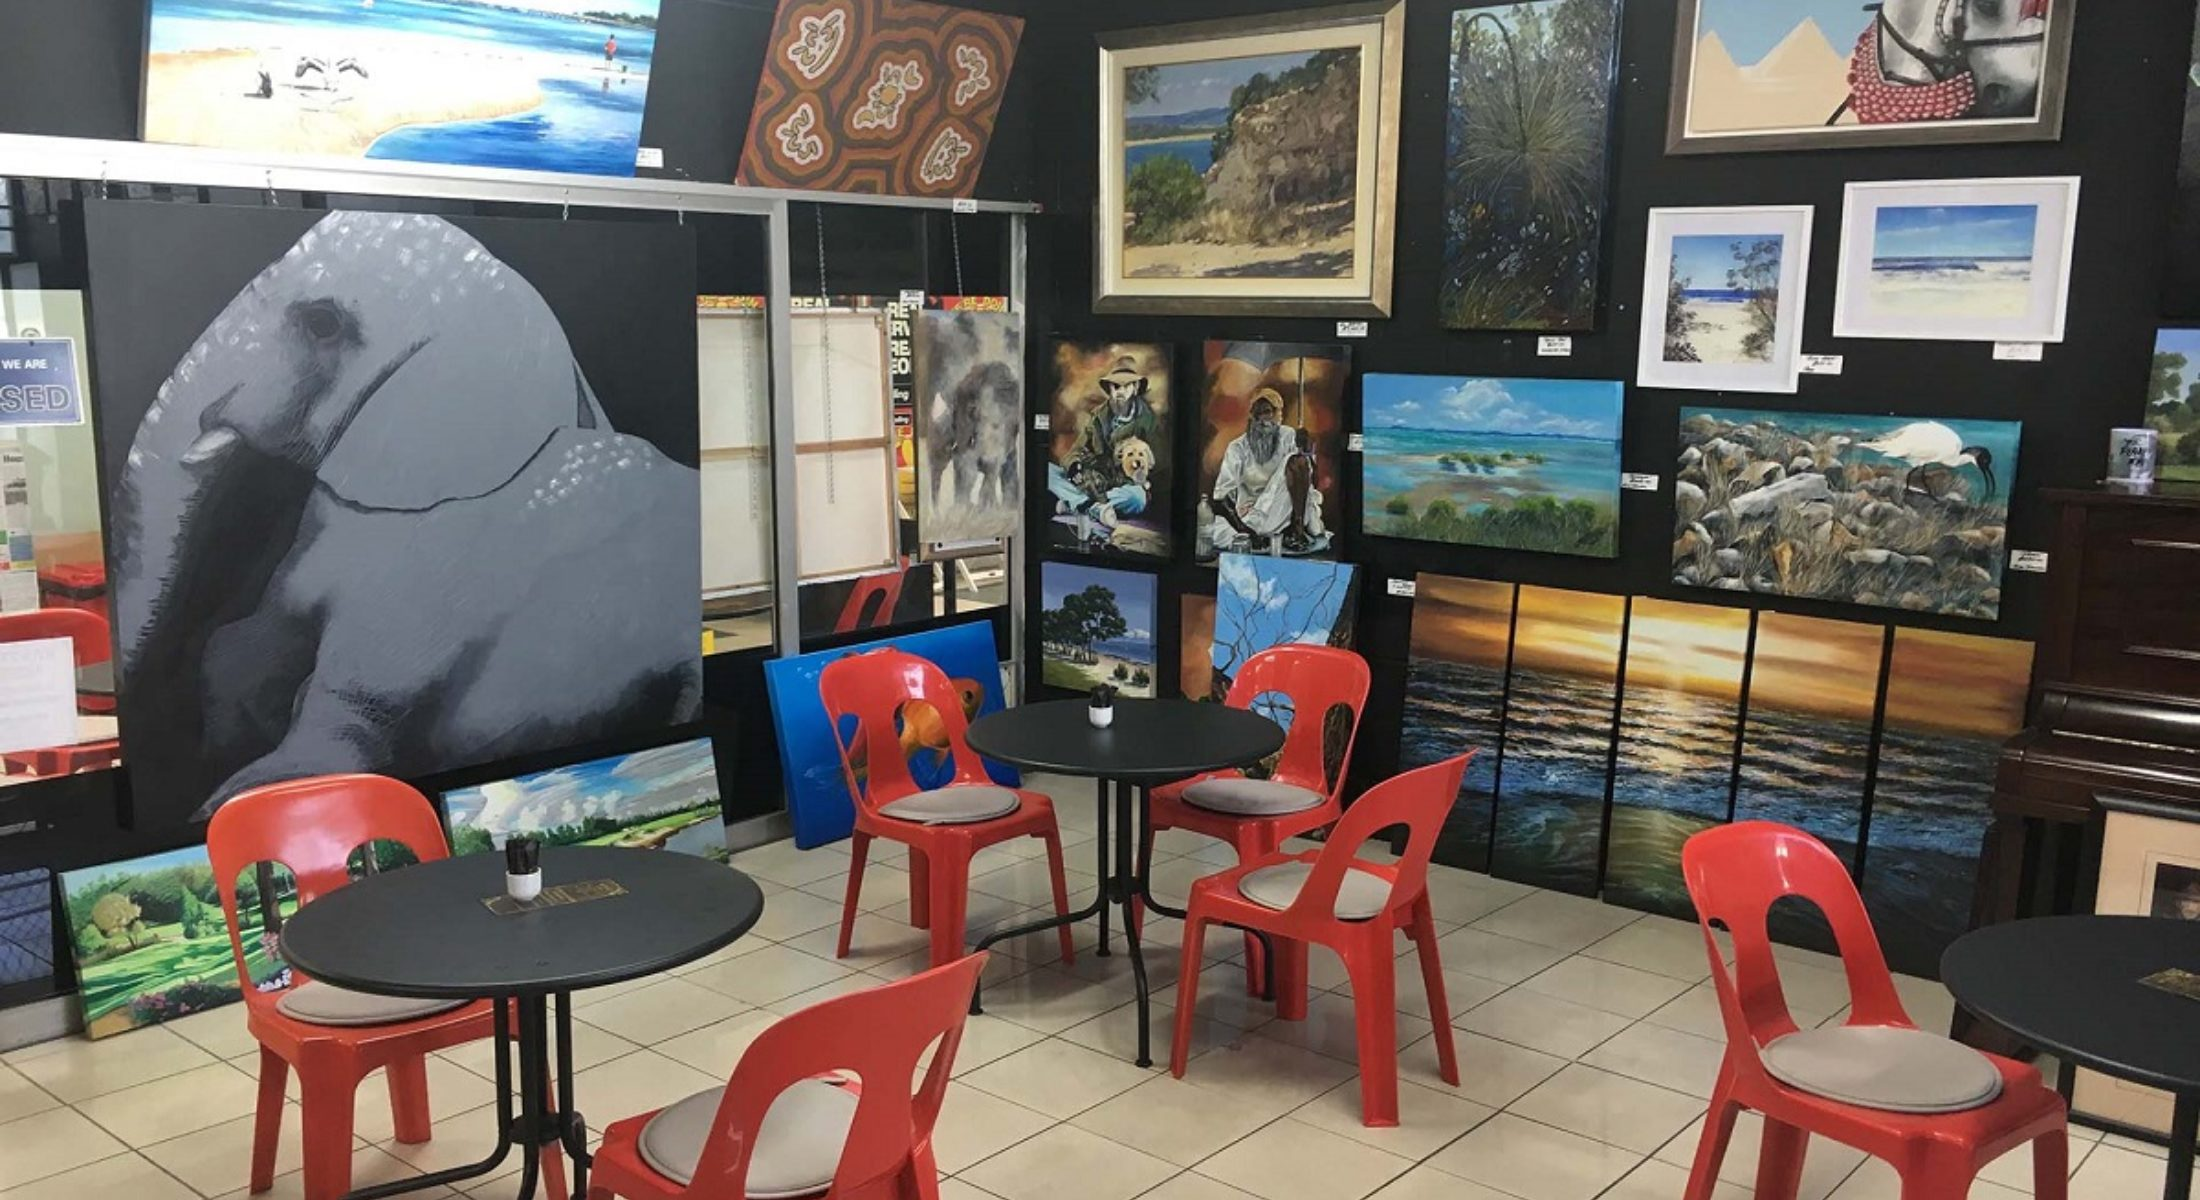 Art Shop Cafe Bribie Island Near Brisbane Buy Artsy Craft Paint Draw Coffee Food Moreton Bay Region